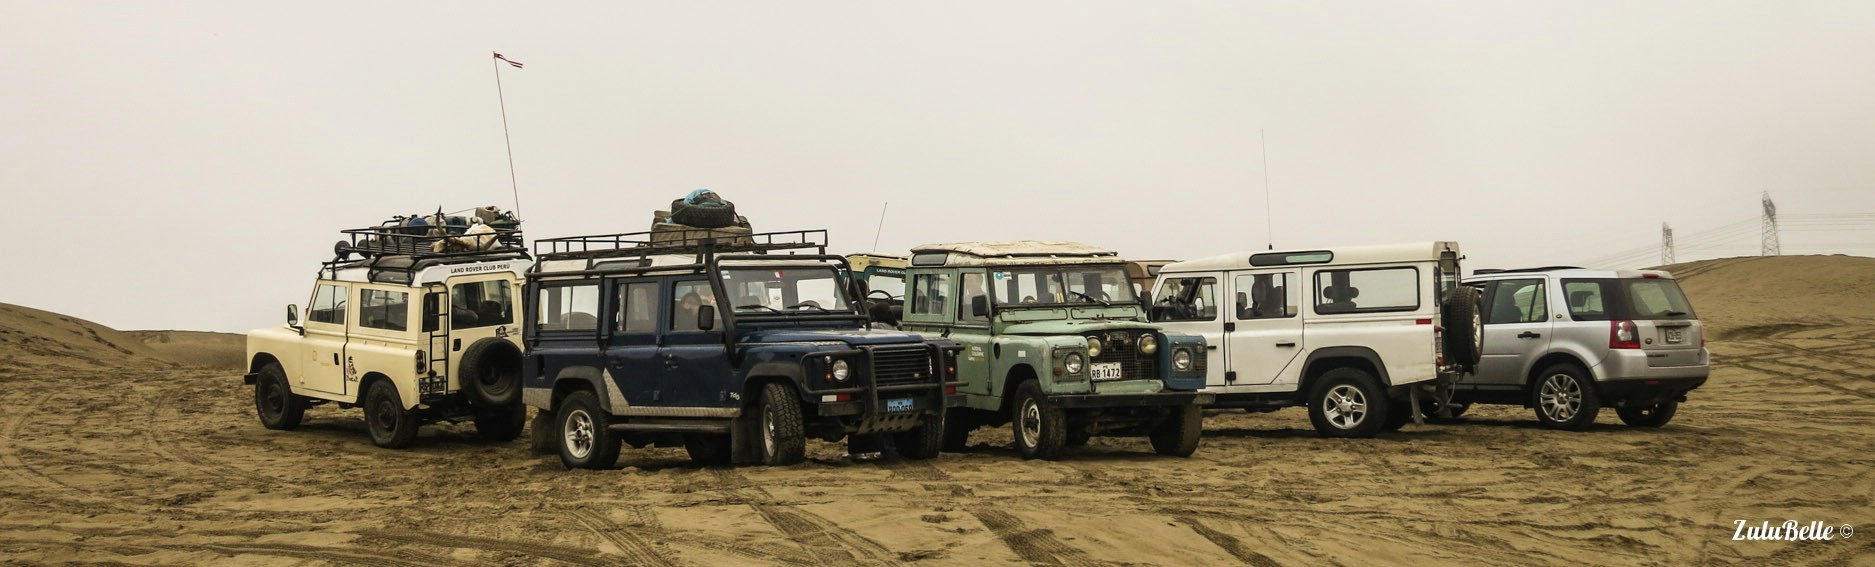 The Land Rover Club, Peru, A2A